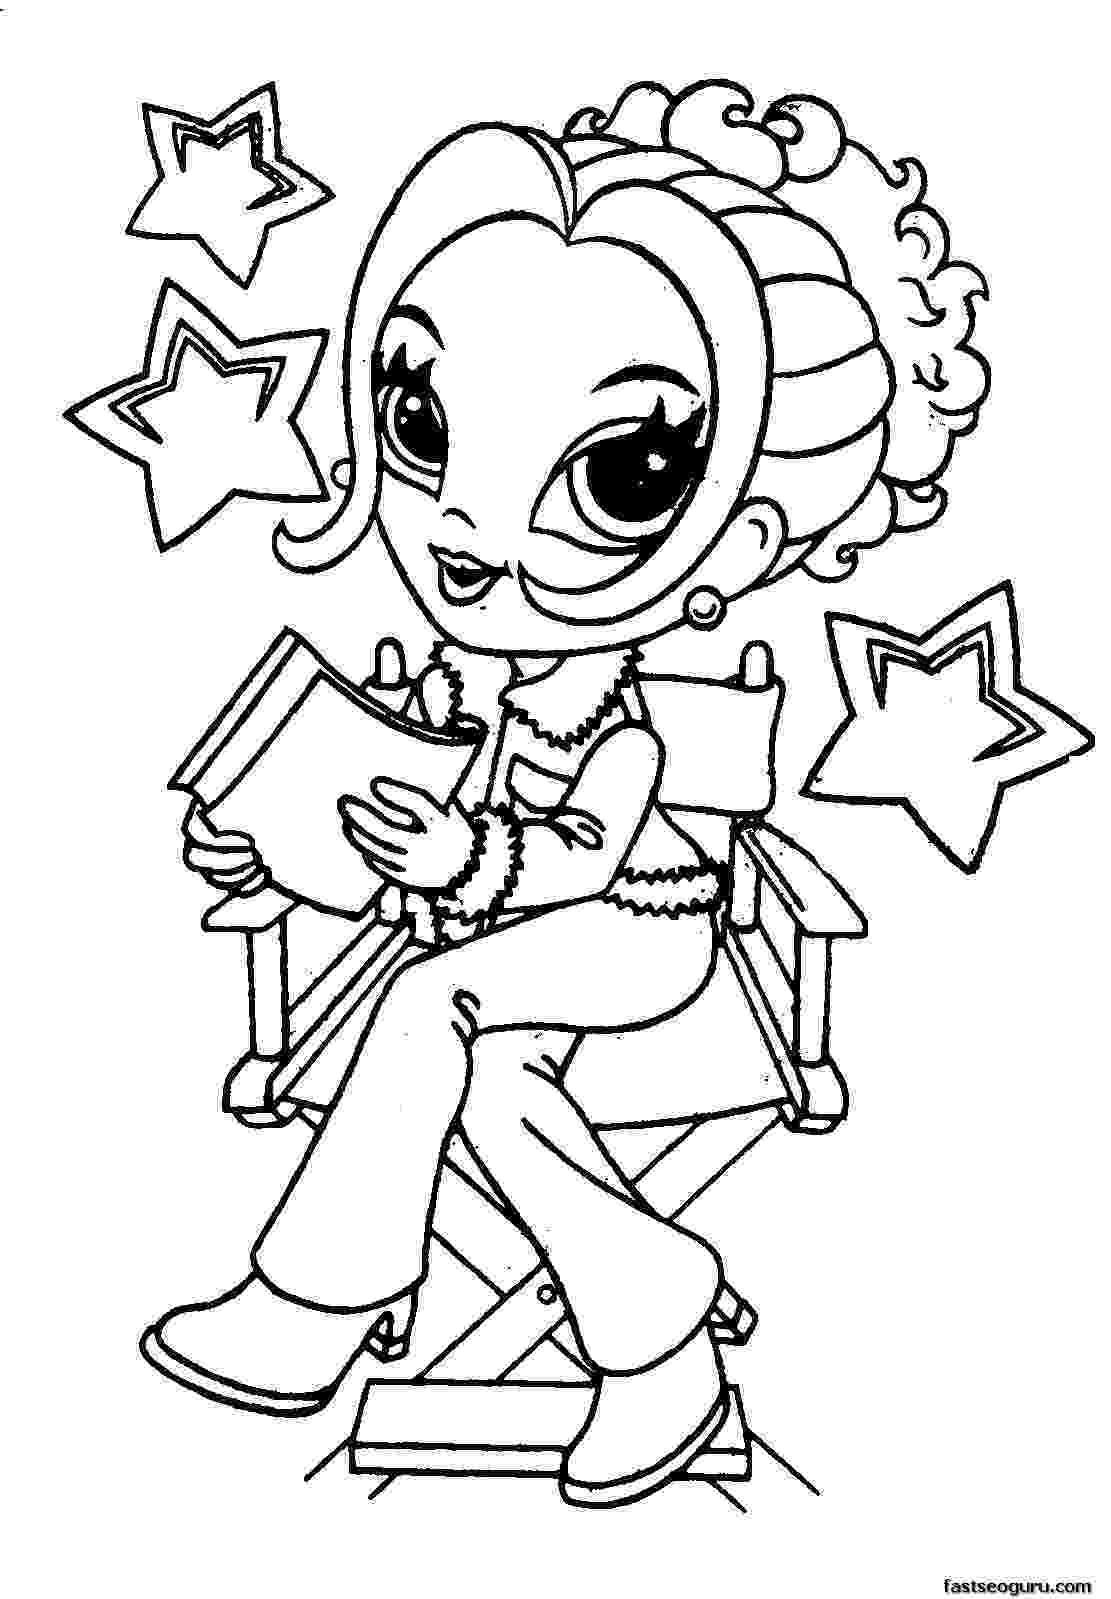 girls coloring pictures coloring pages for girls best coloring pages for kids girls coloring pictures